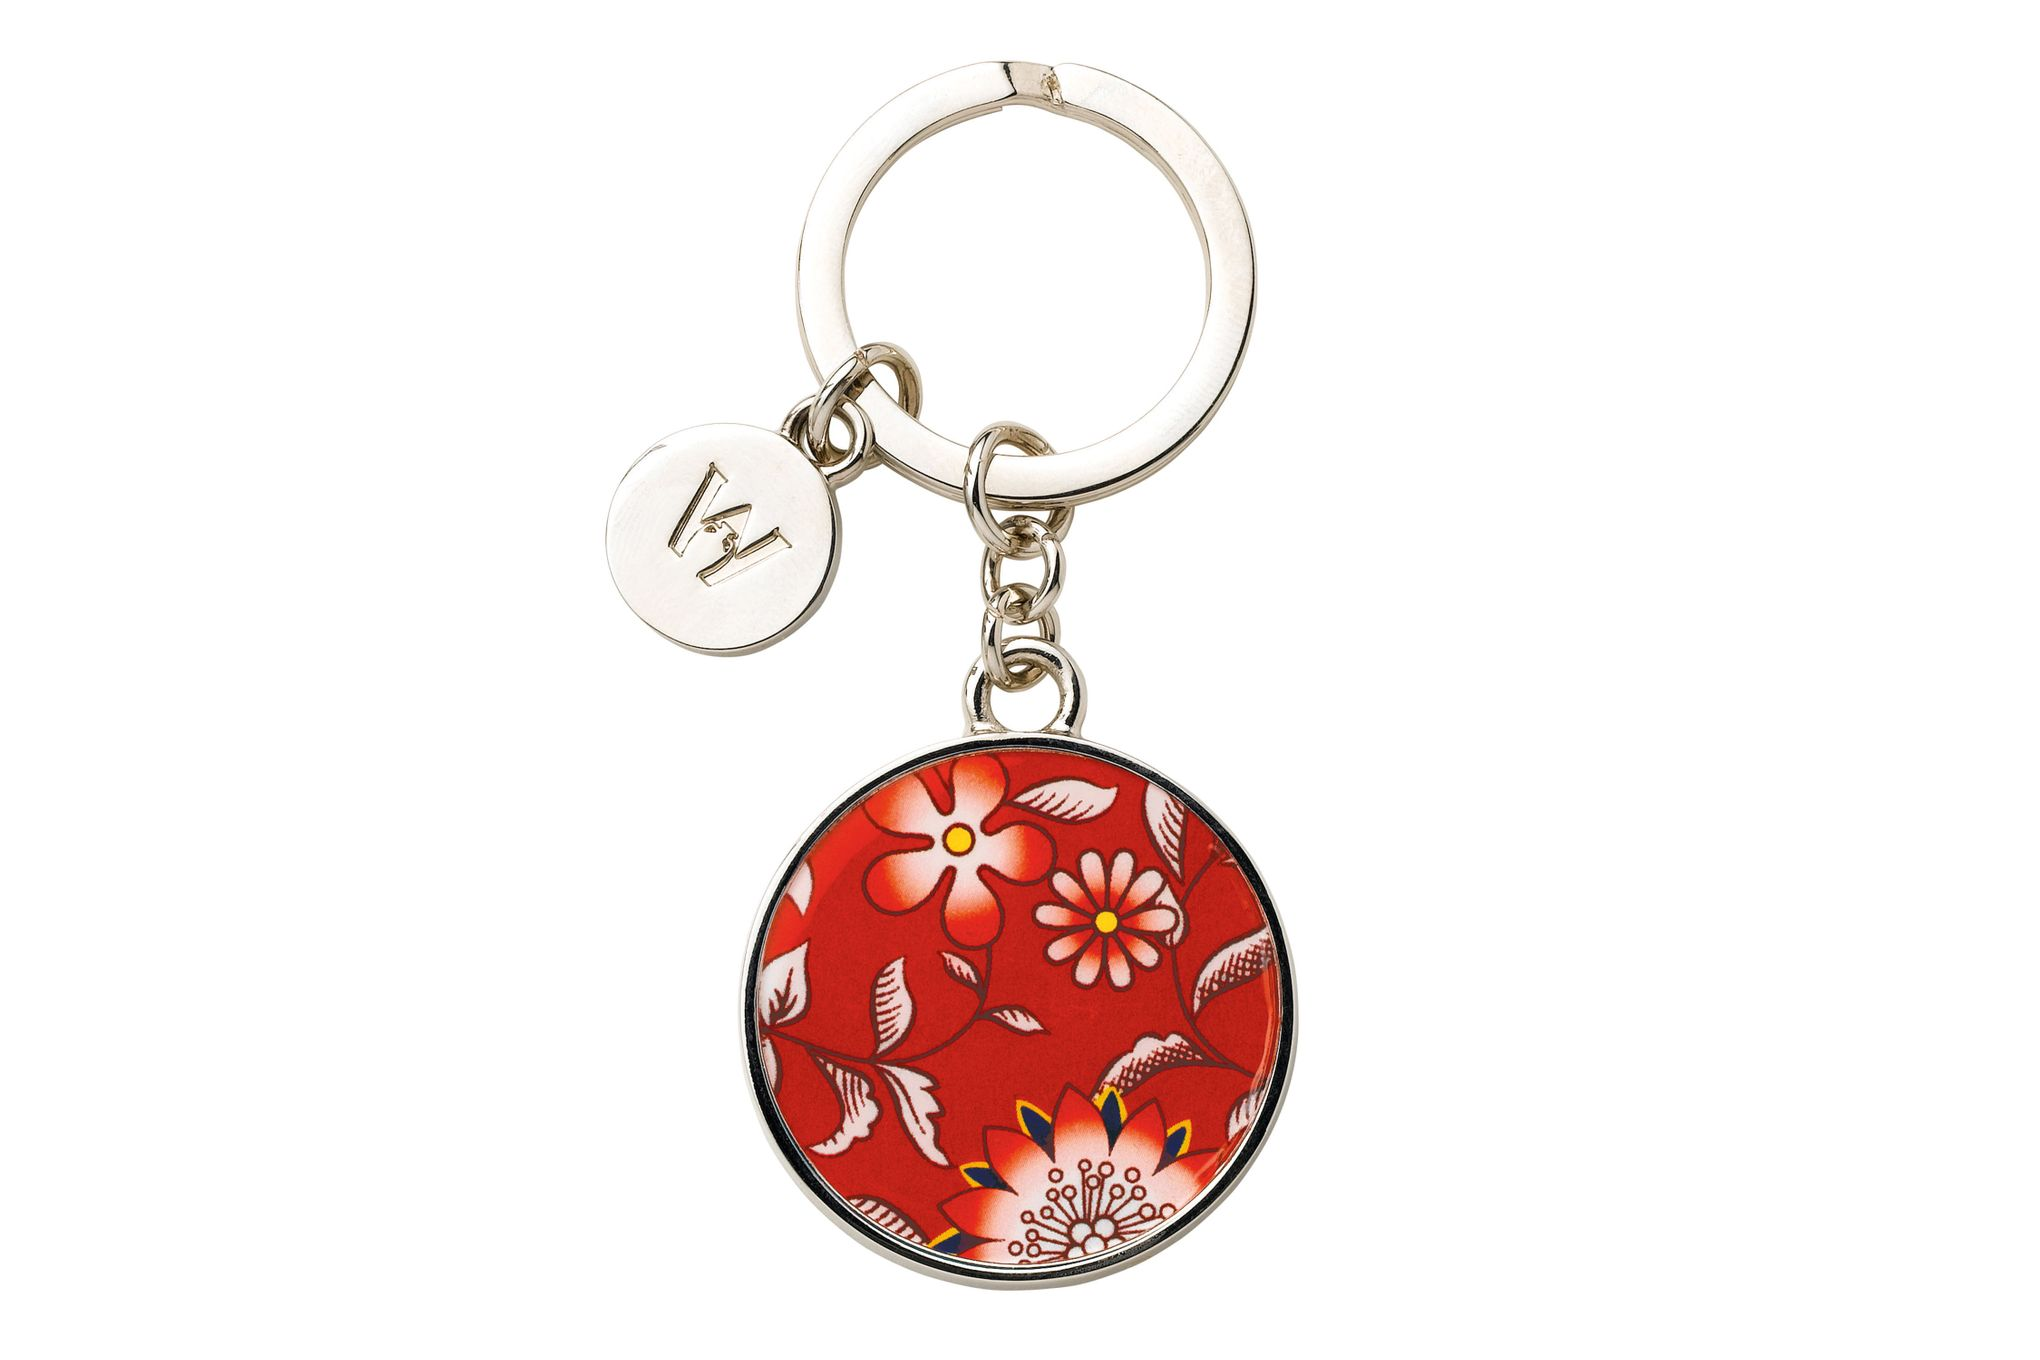 Wedgwood Wonderlust Keyring Crimson Jewel - Boxed thumb 1